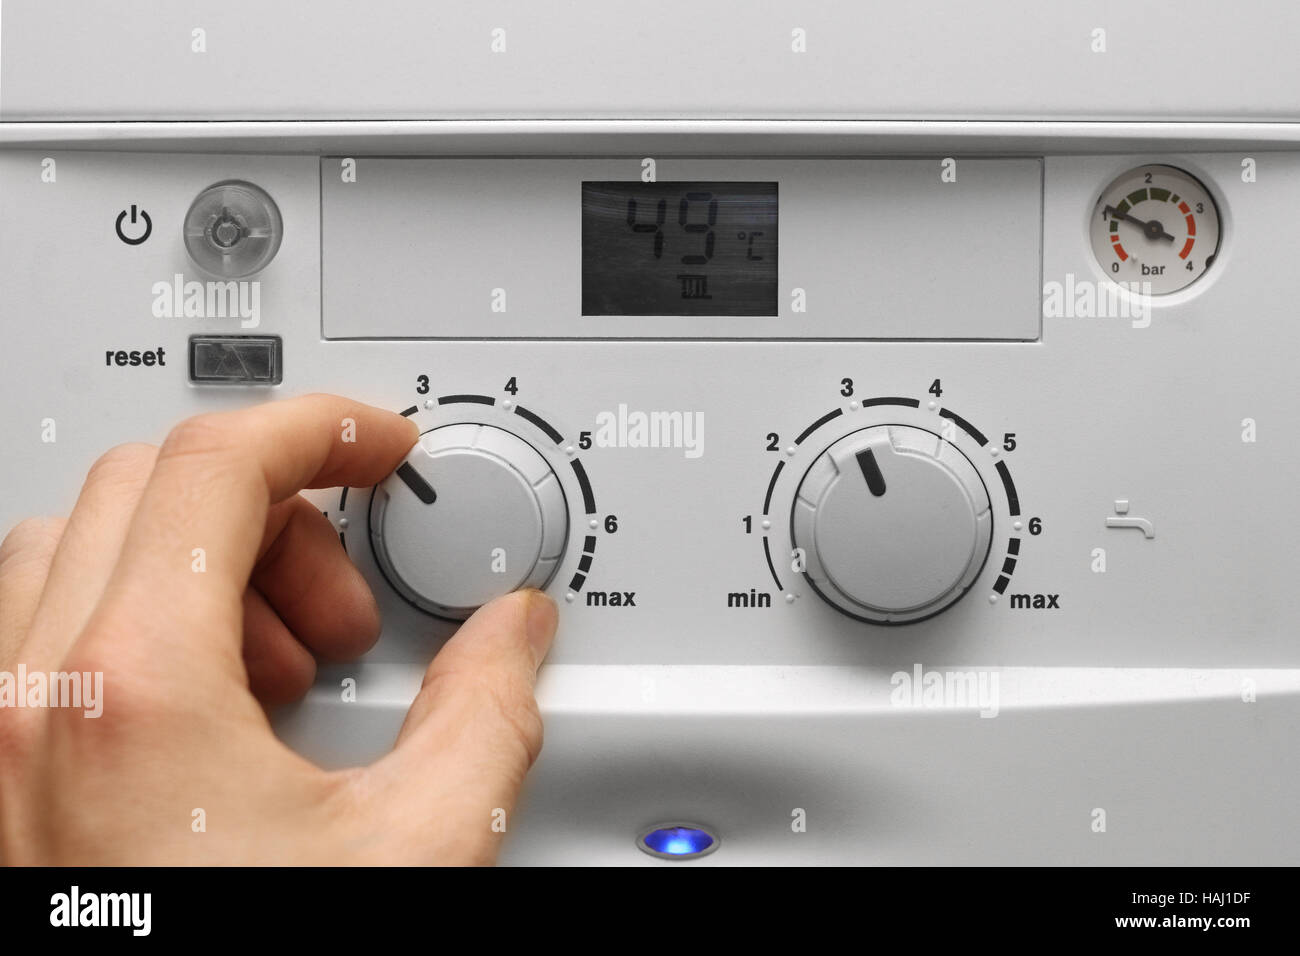 House Heating Stockfotos & House Heating Bilder - Alamy